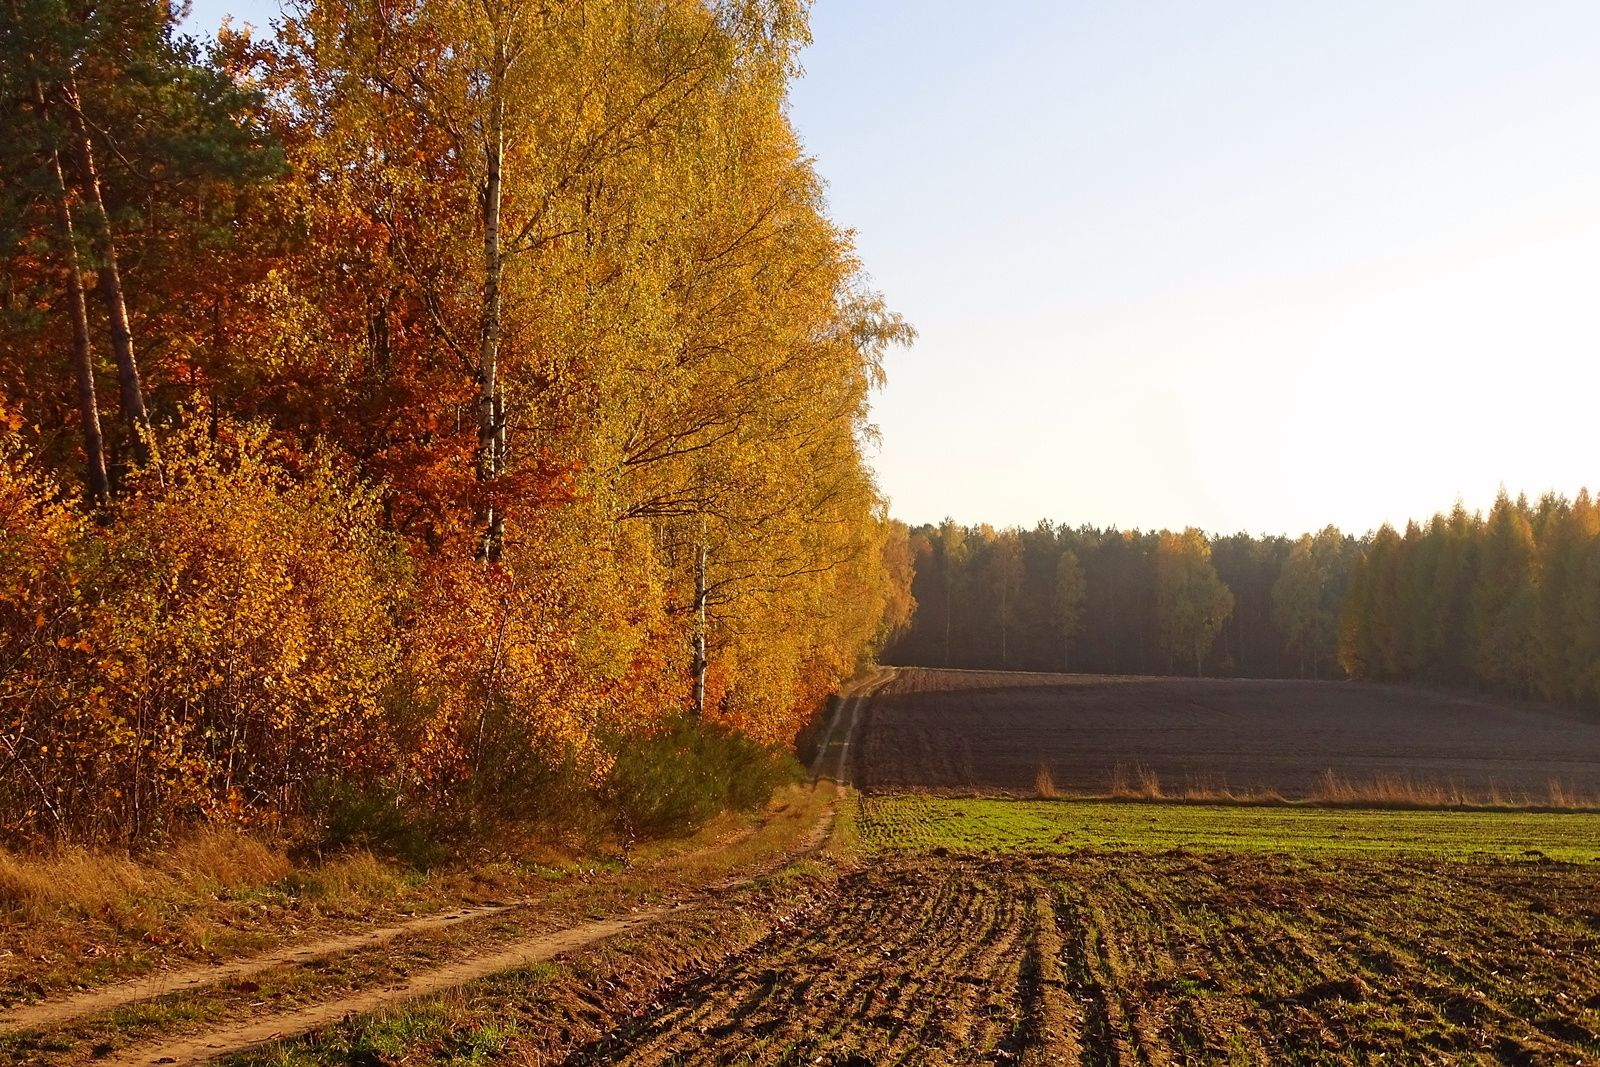 autumn in the forest - Wągry, Poland